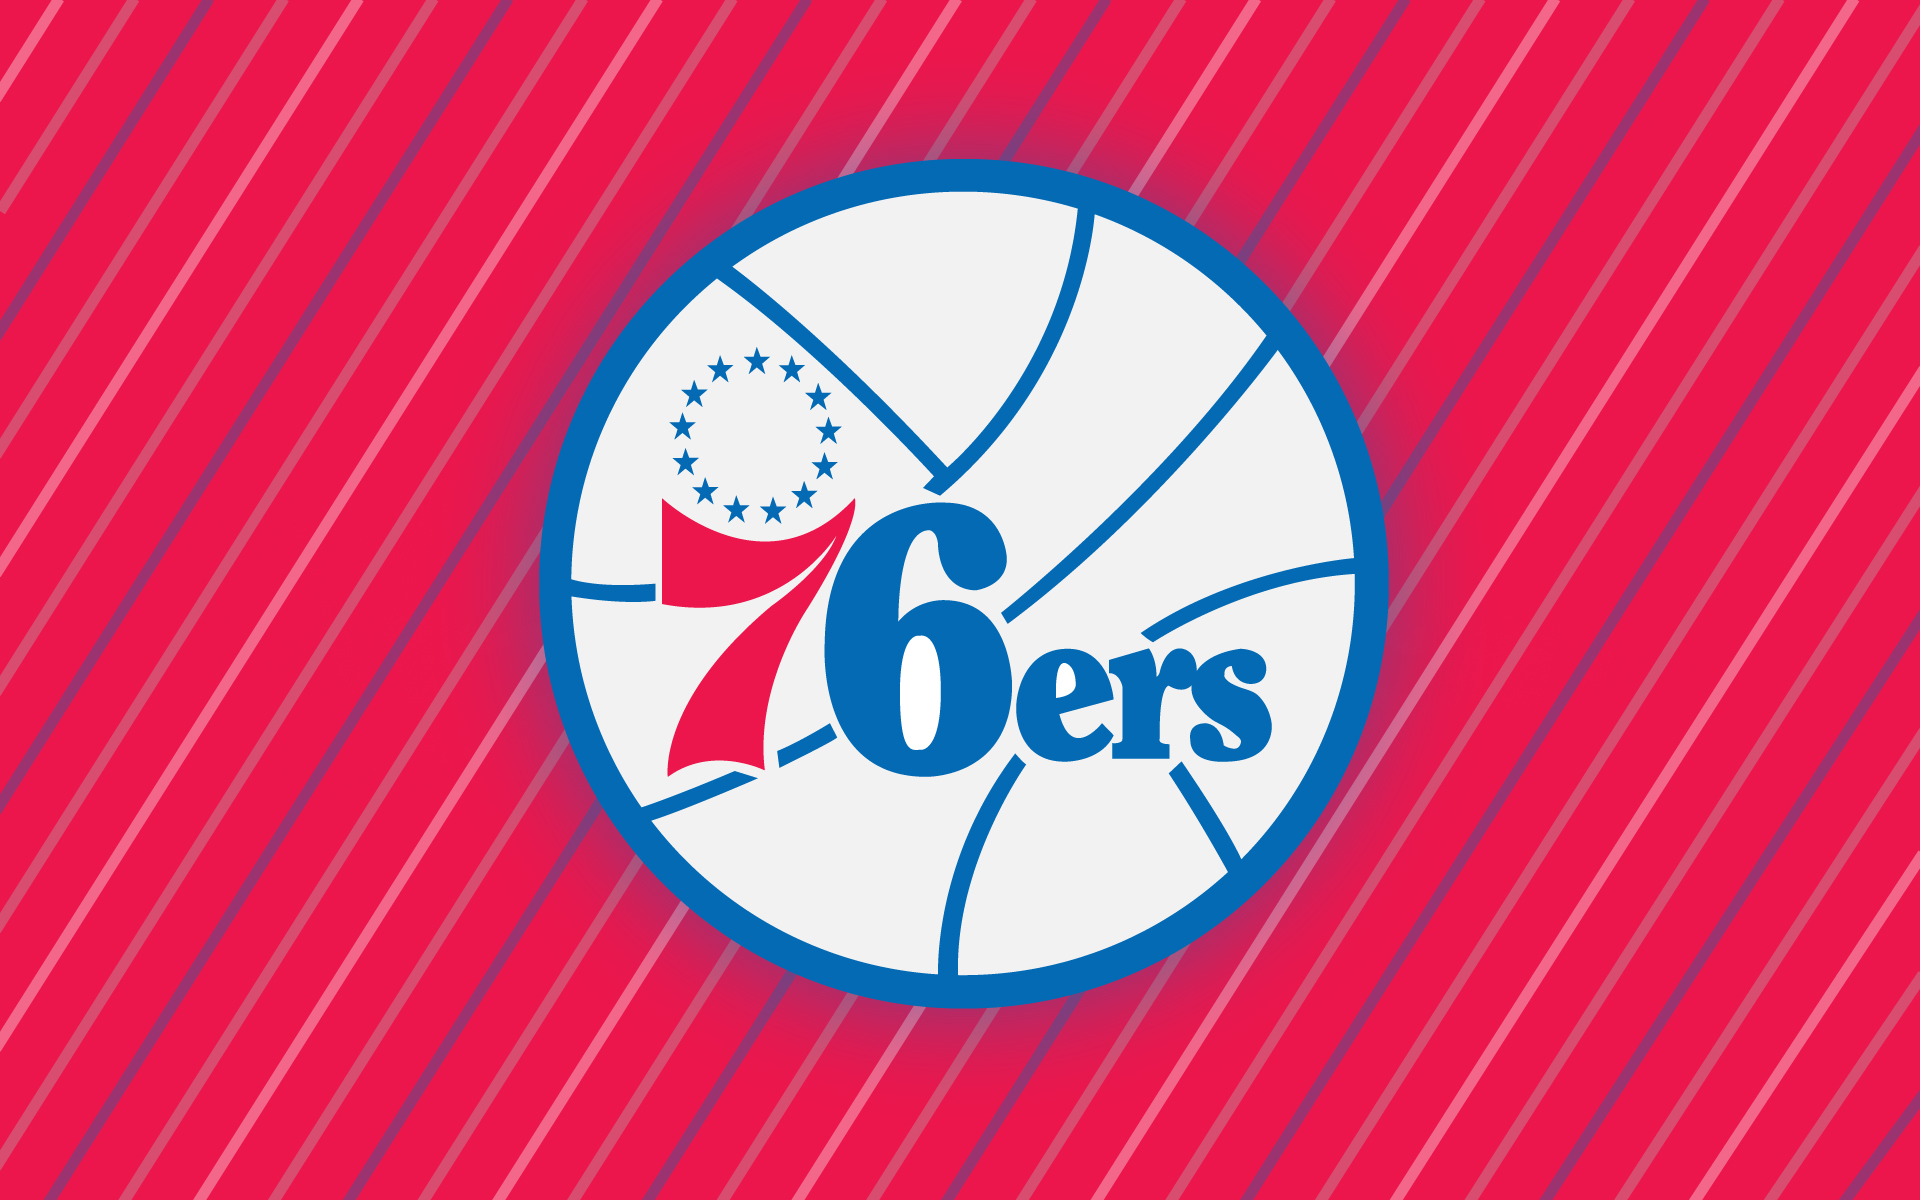 Free 76ers Wallpaper